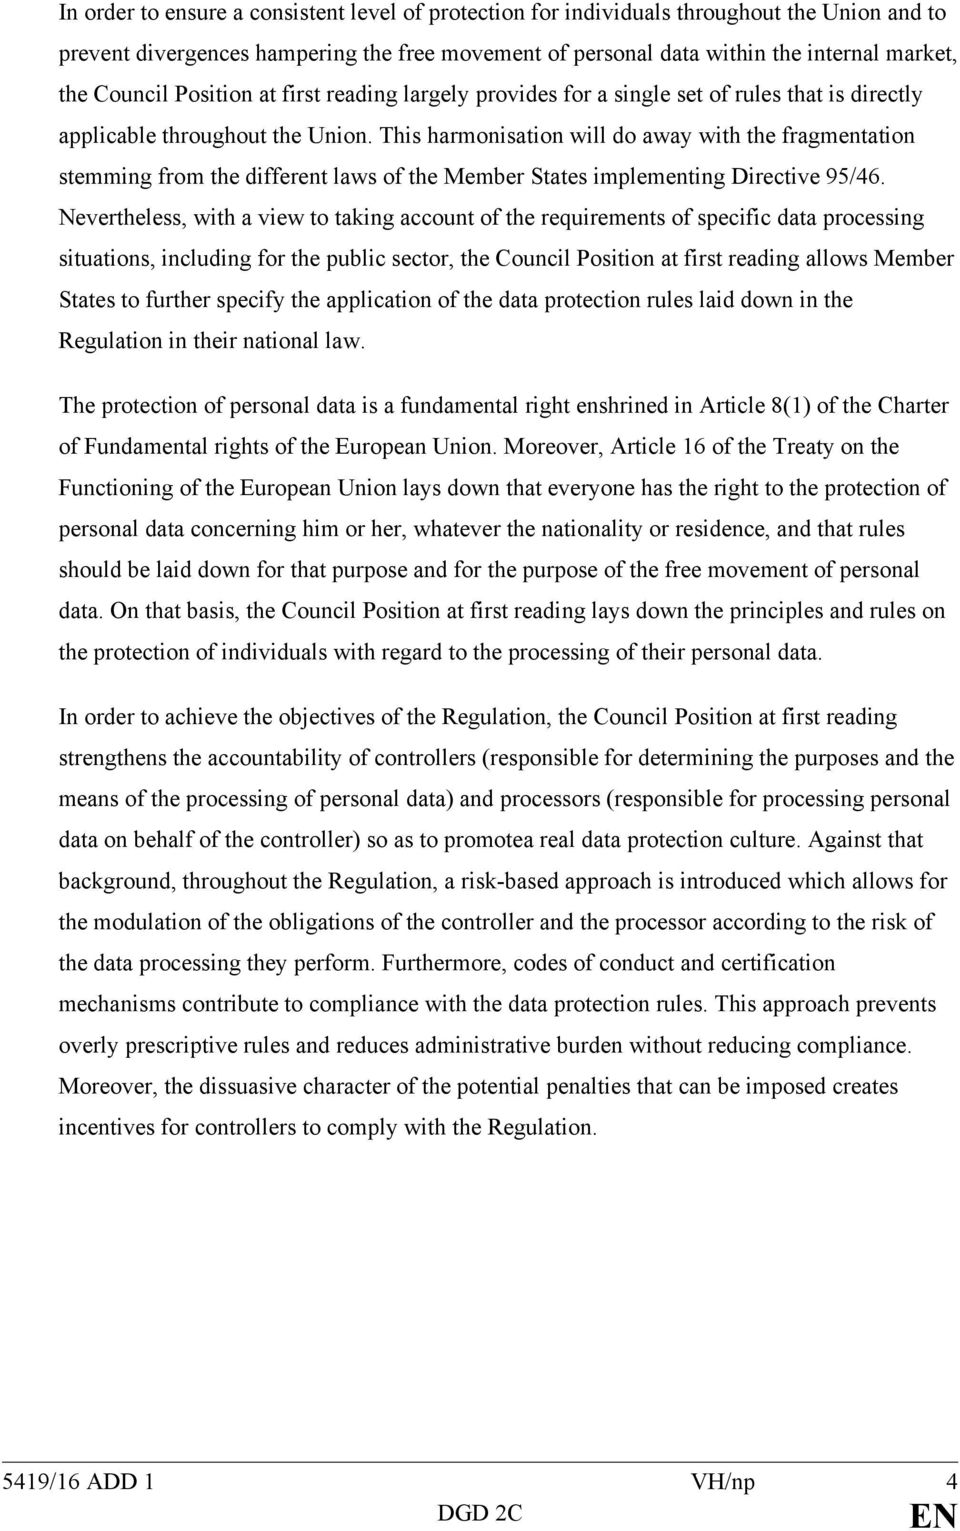 This harmonisation will do away with the fragmentation stemming from the different laws of the Member States implementing Directive 95/46.